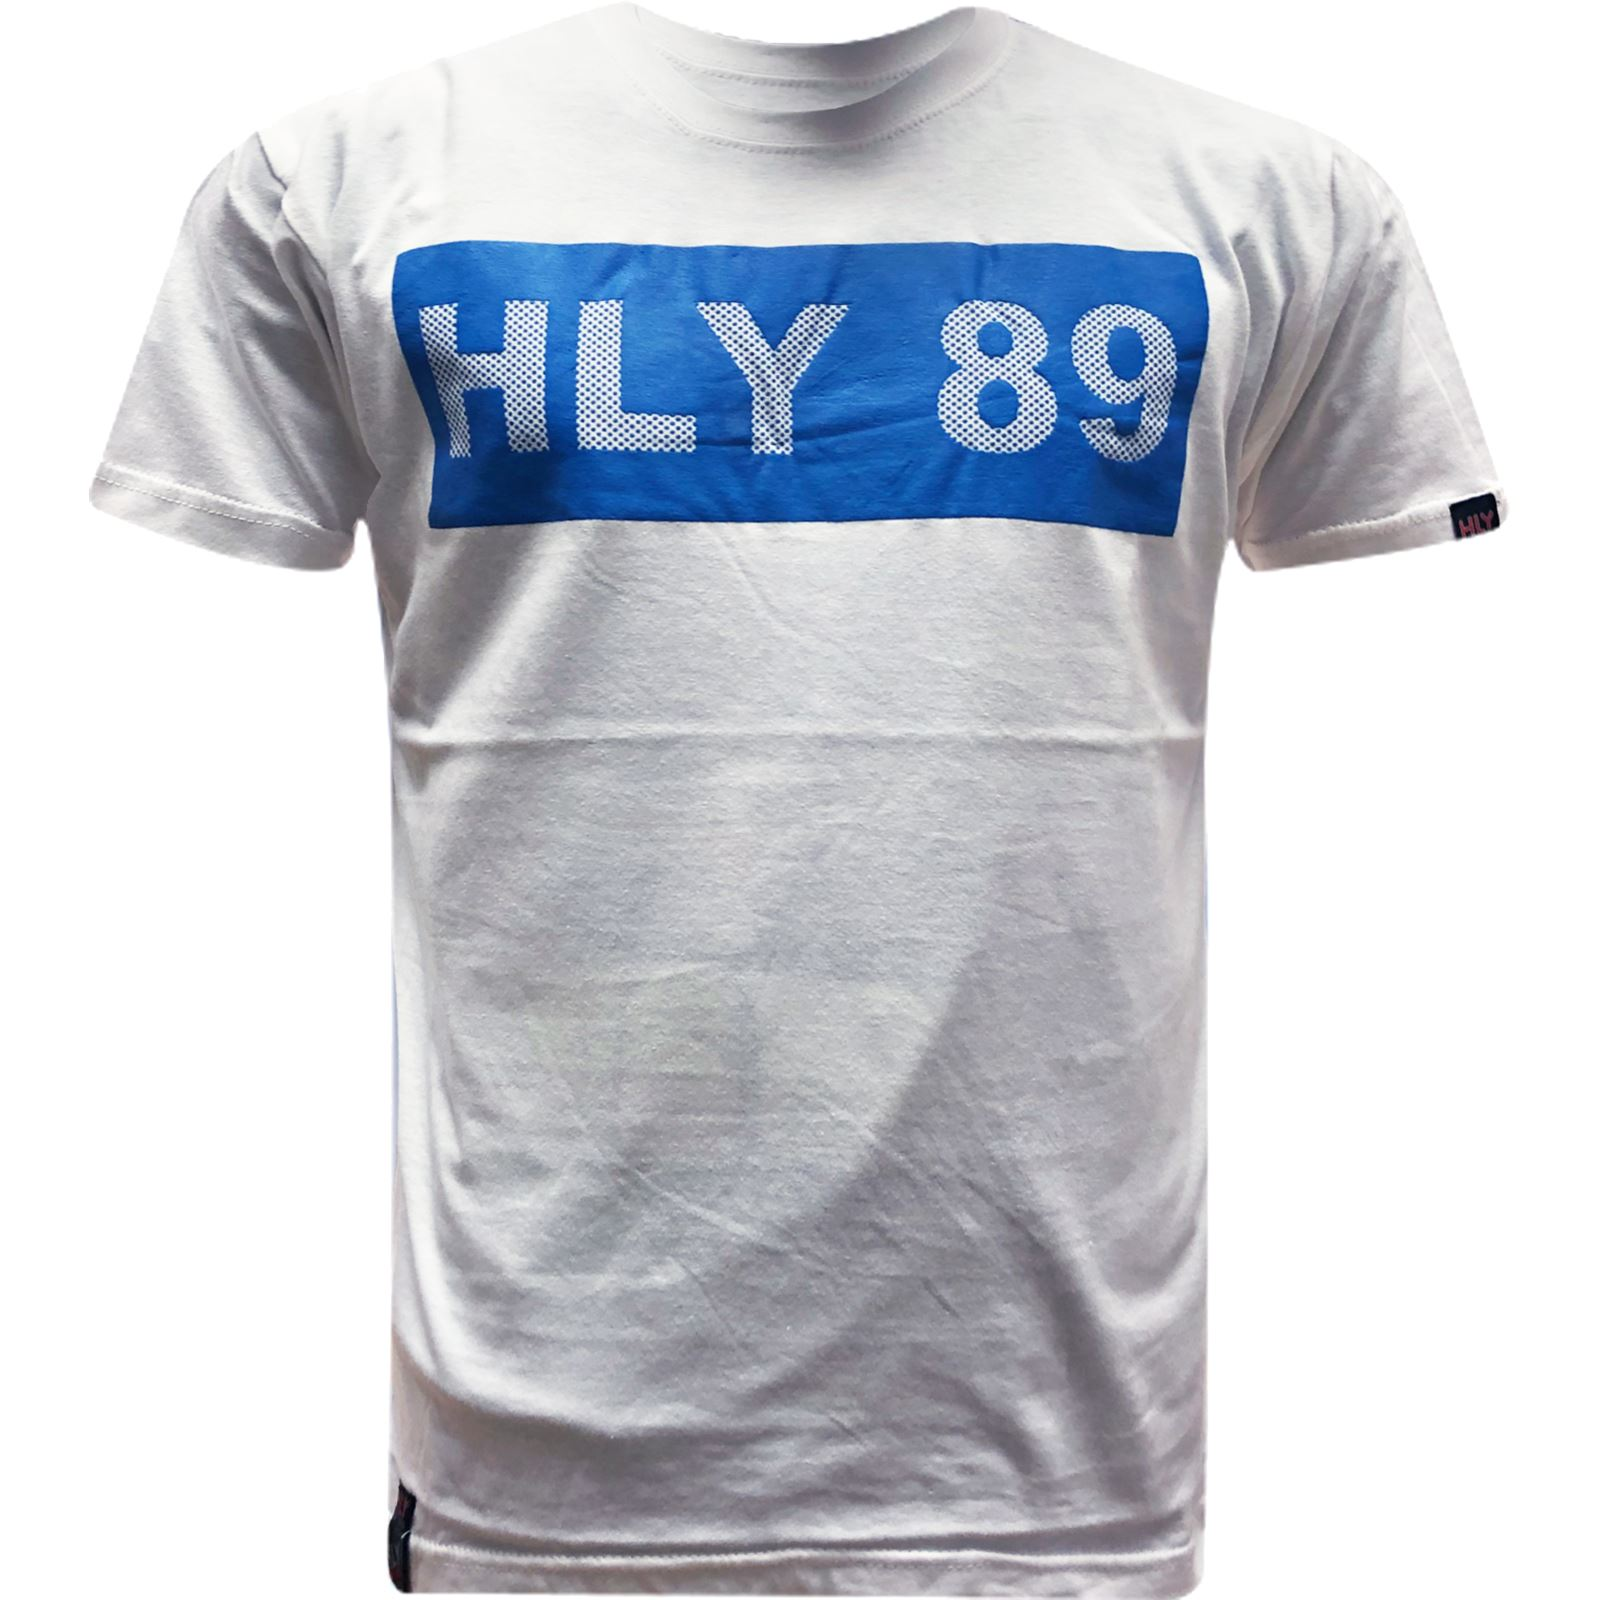 Mens-HLY-EQPT-Printed-T-Shirt-100-Cotton-Gym-Athletic-Training-Tee-Top-Summer thumbnail 50